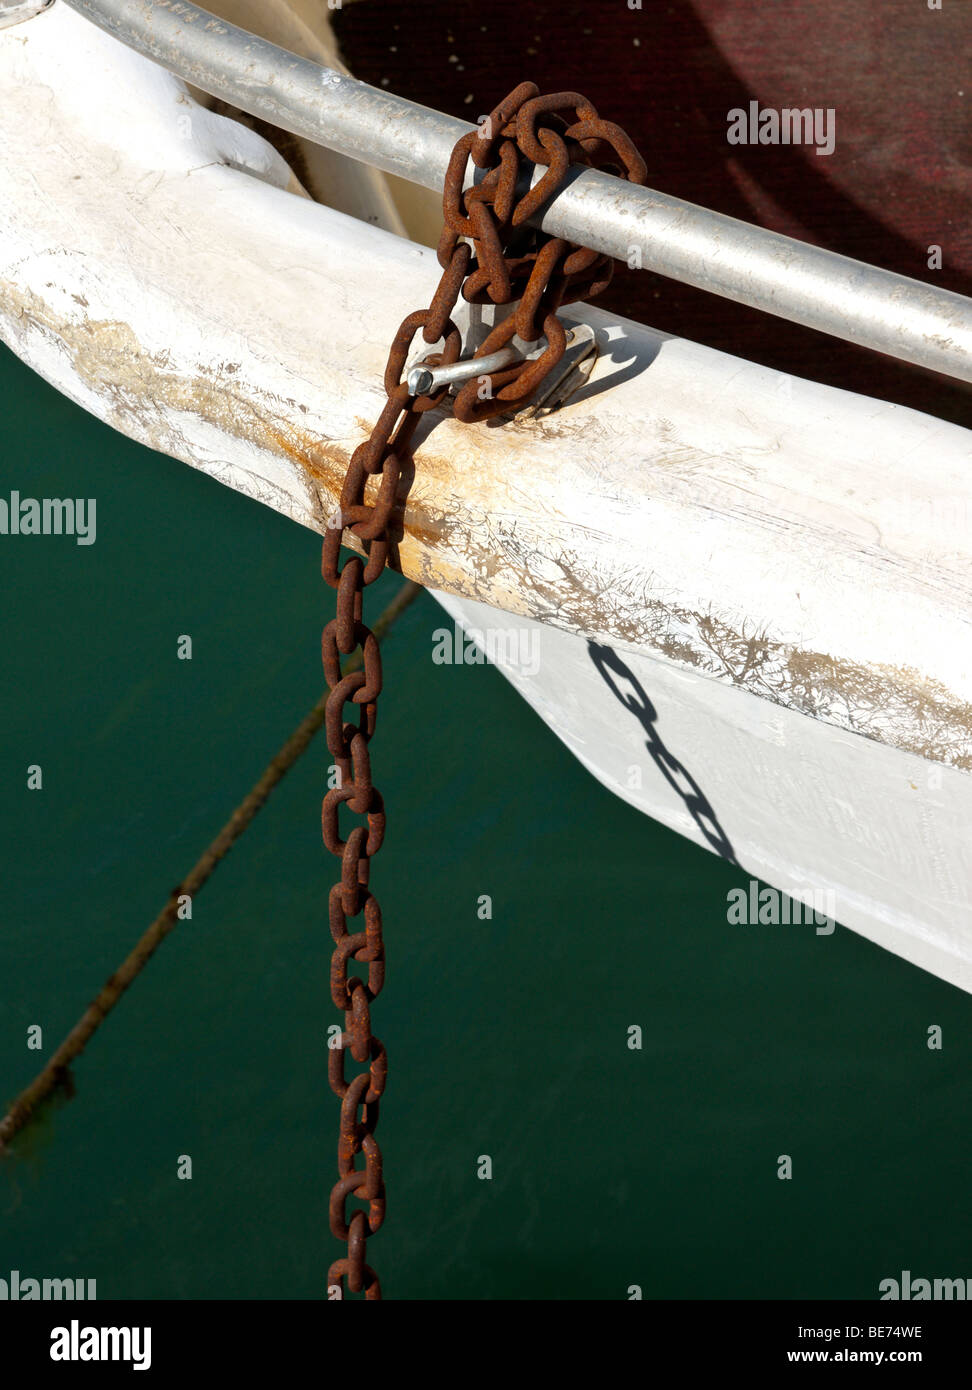 Rusty old chain tied to a boat. - Stock Image